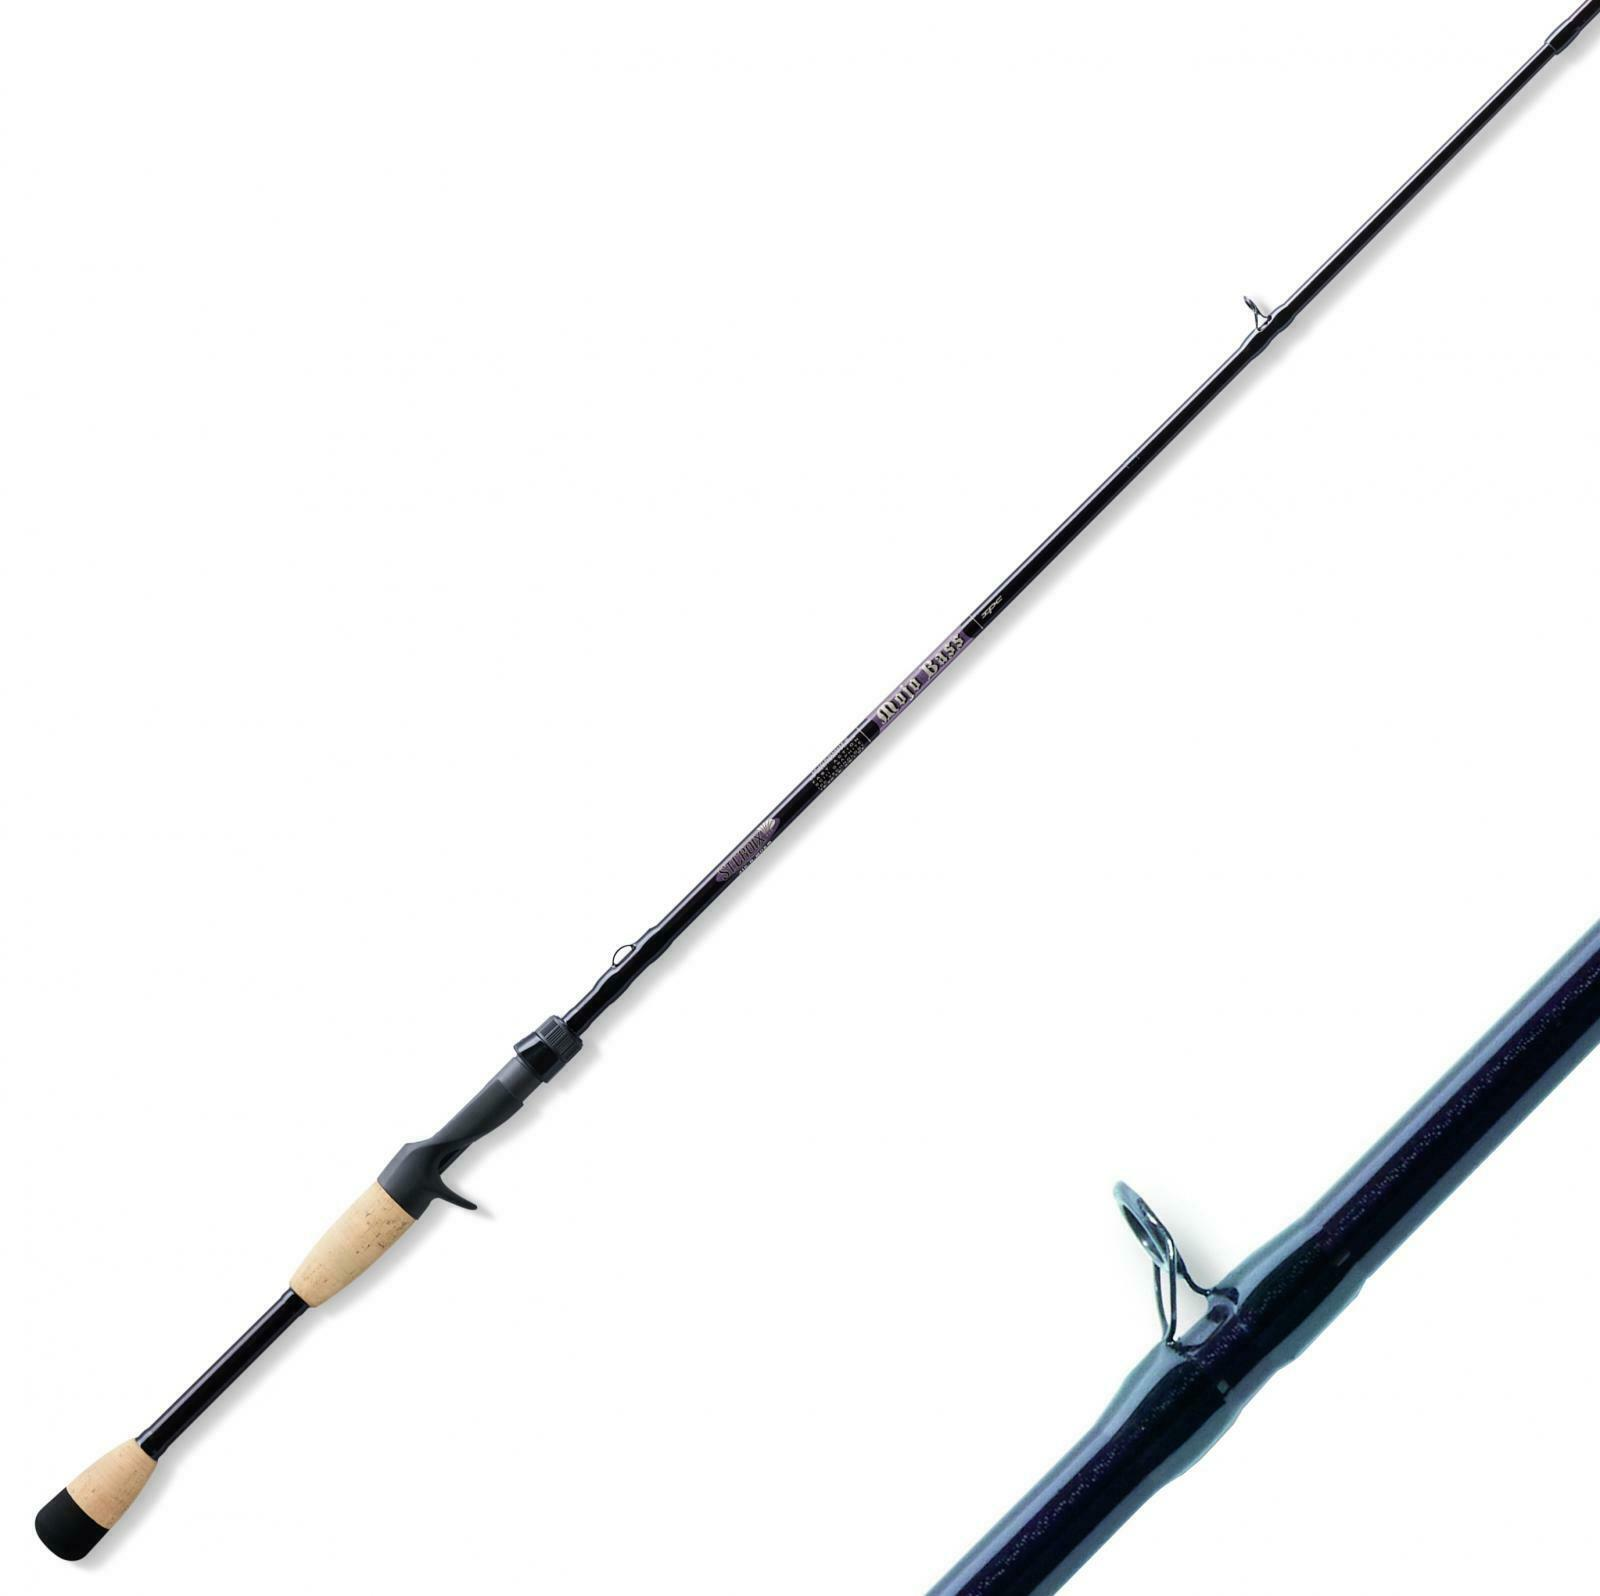 Canna Pesca St Croix Mojo Bass Casting 2,03 m Monopezzo Topwater Jig PPG